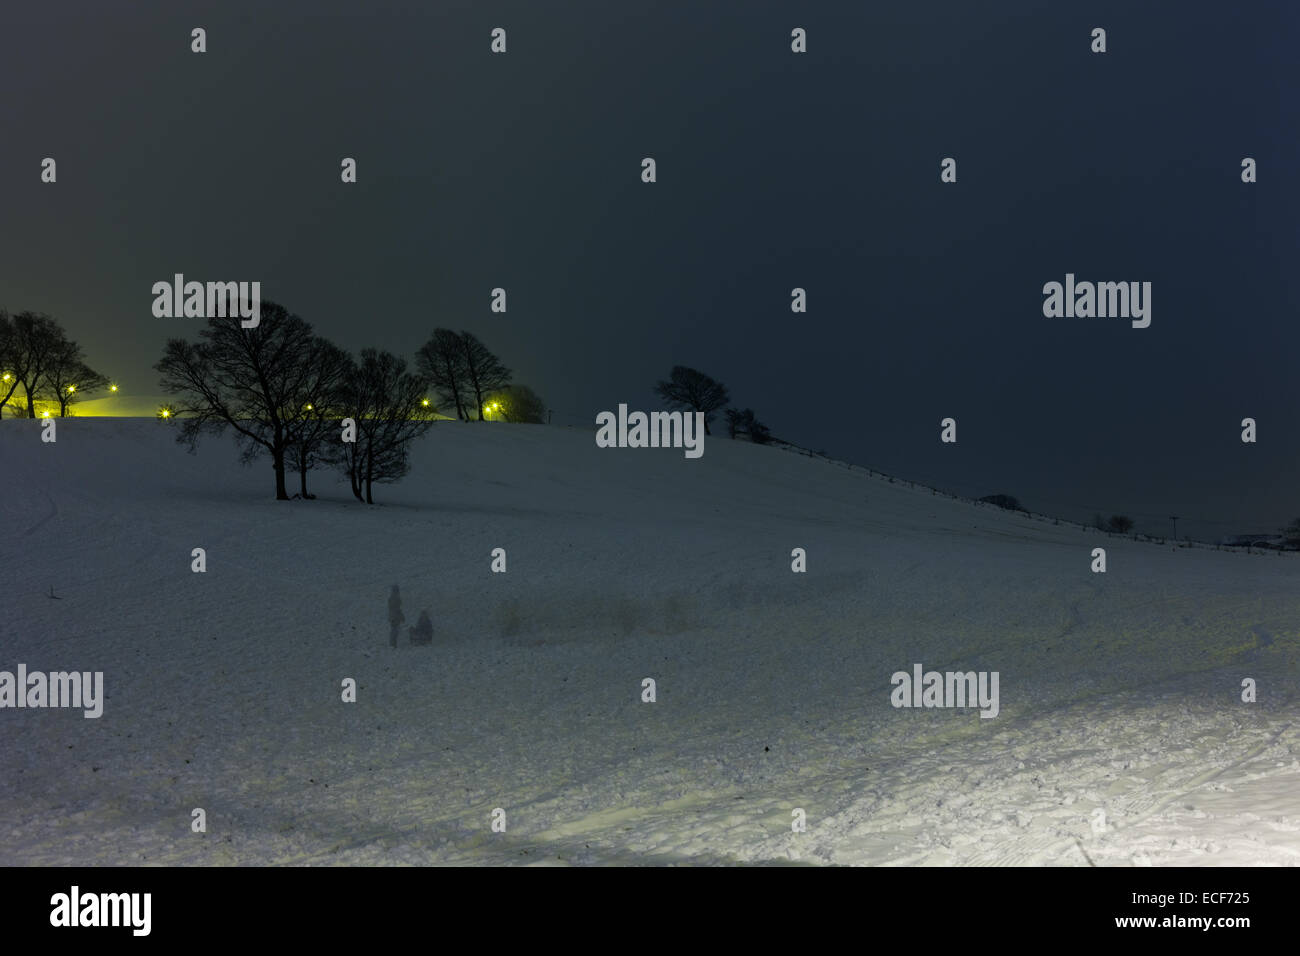 sledging-on-a-snow-covered-hill-not-snow